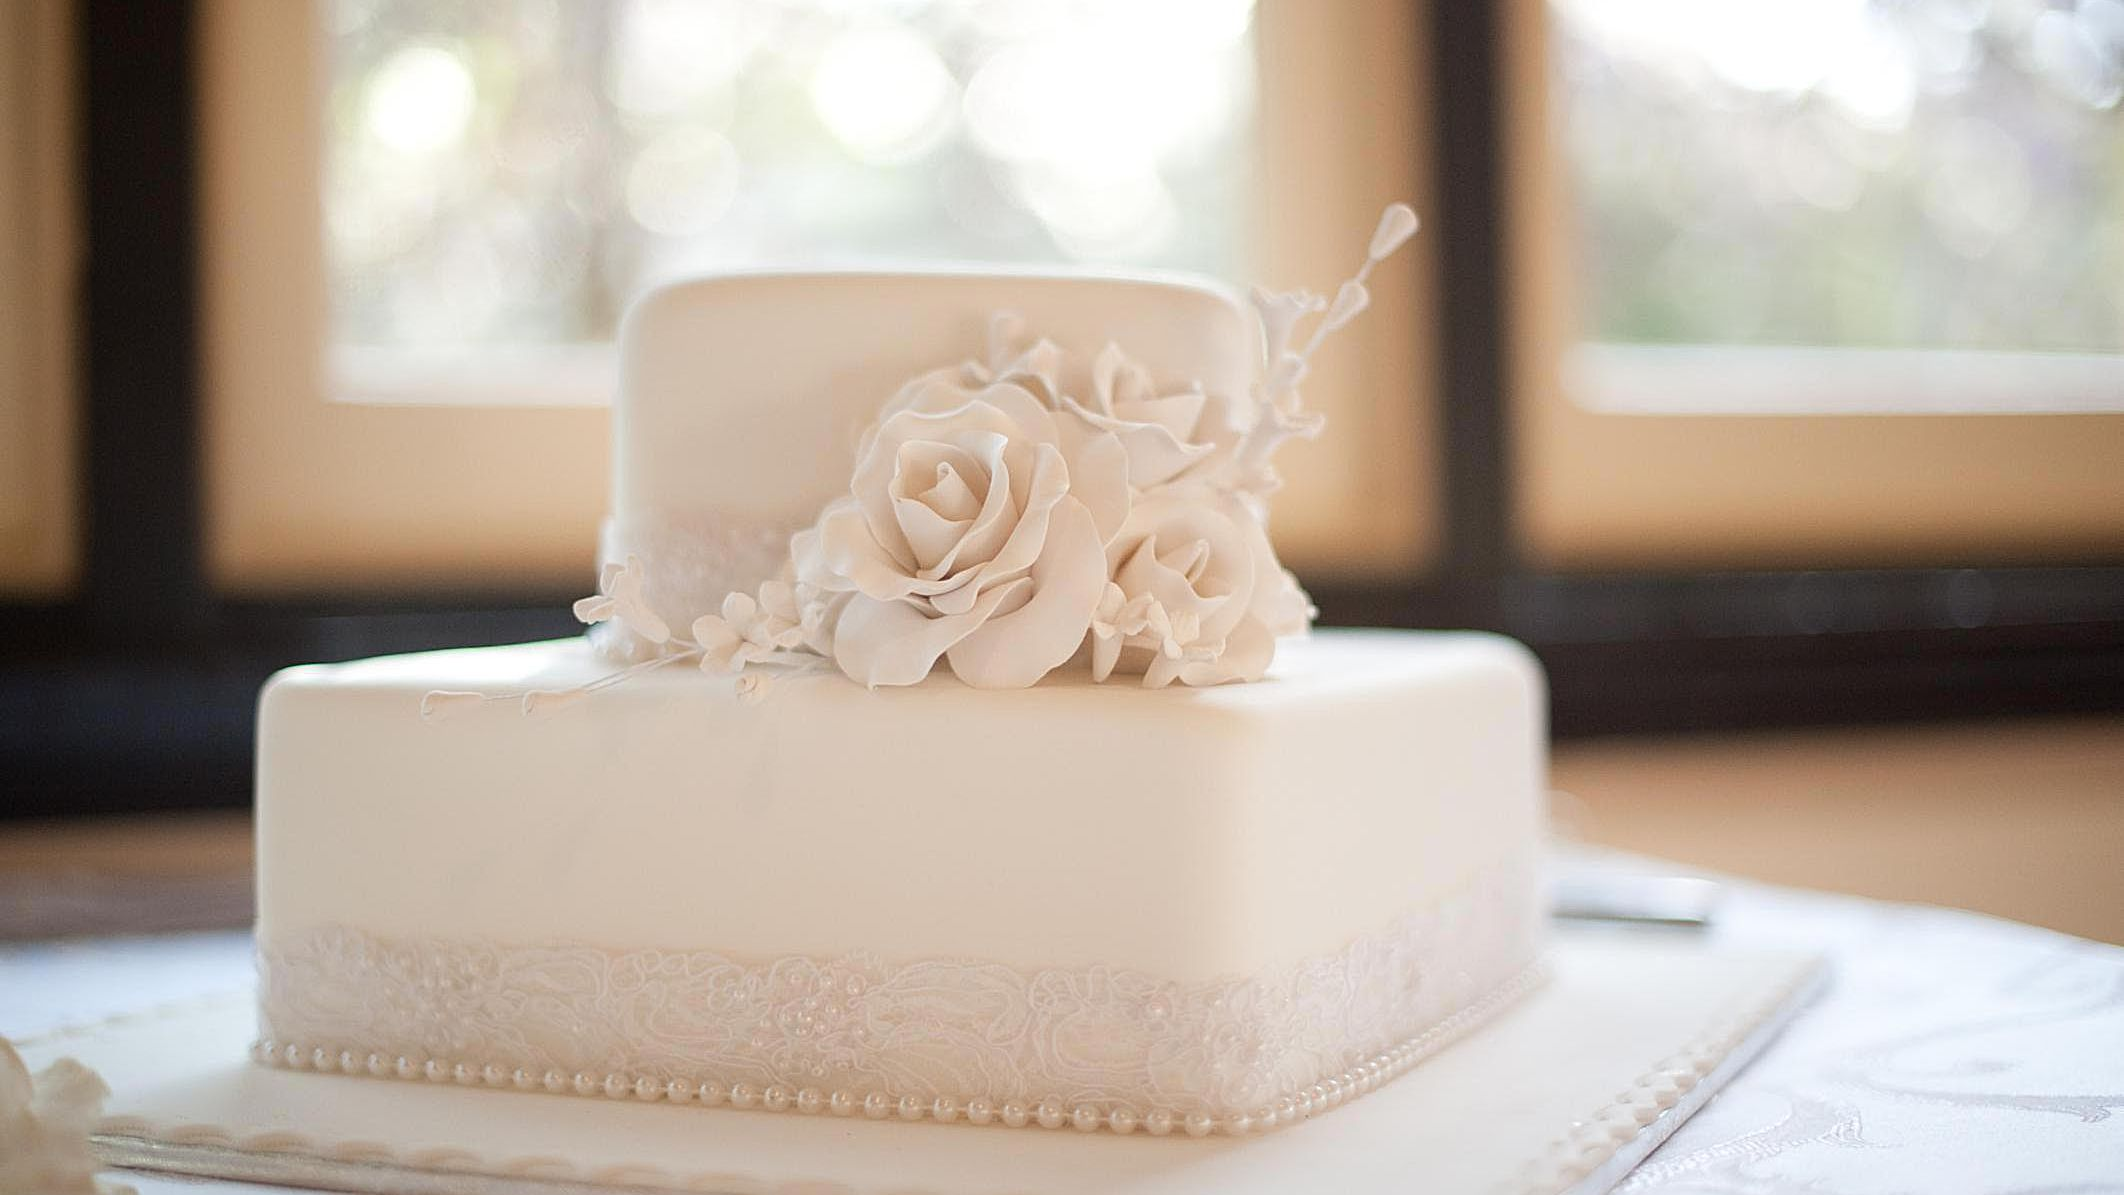 Common Fondant Problems And How To Fix Them